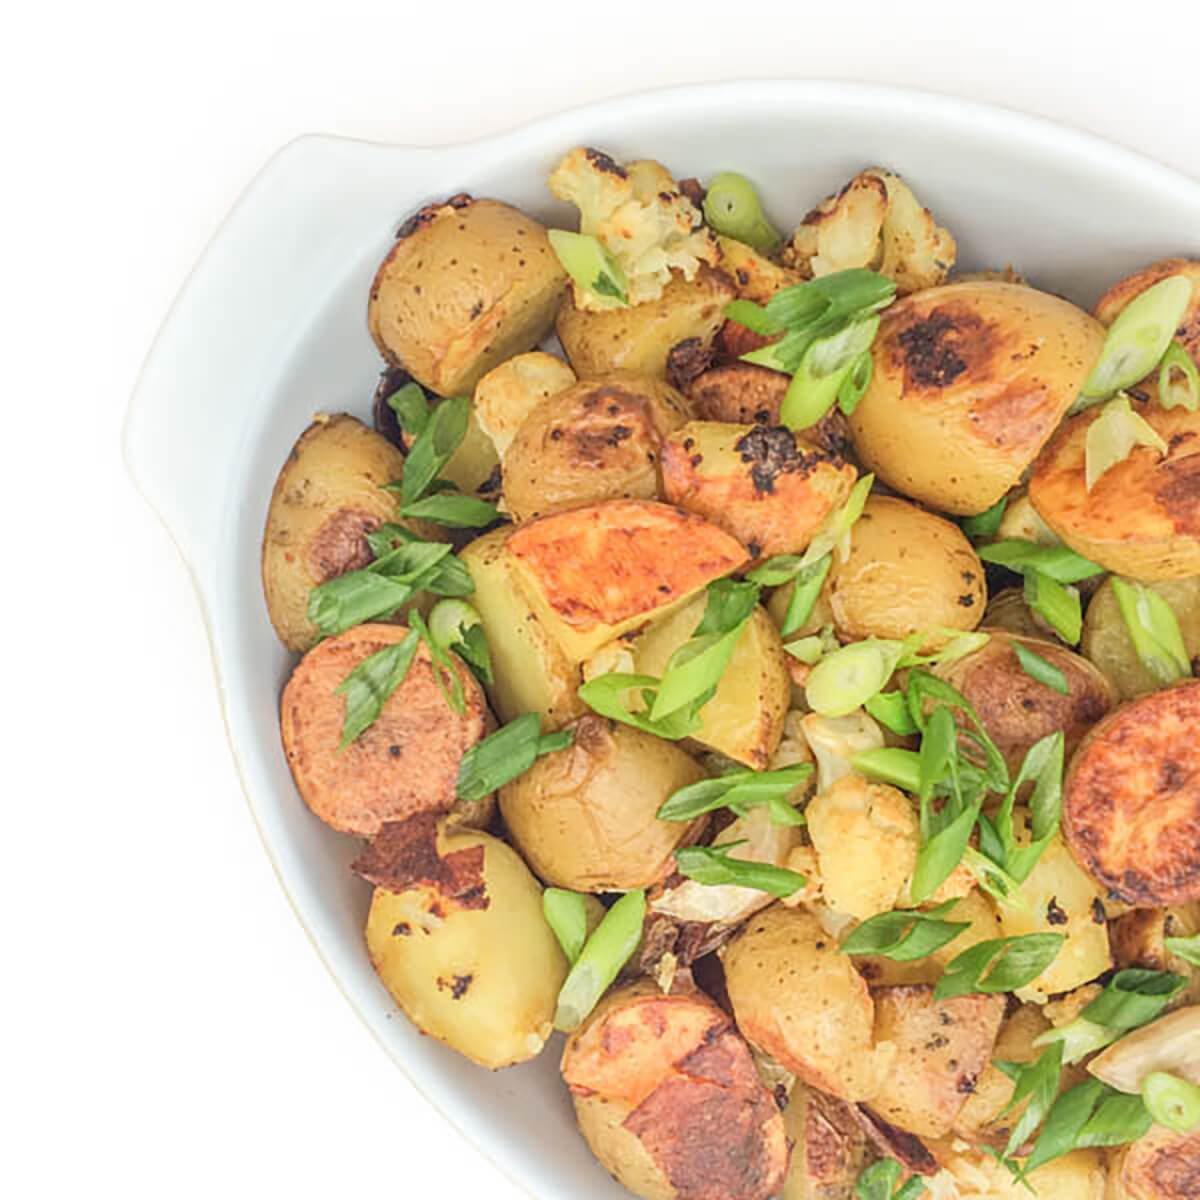 Roasted Potatoes and Cauliflower